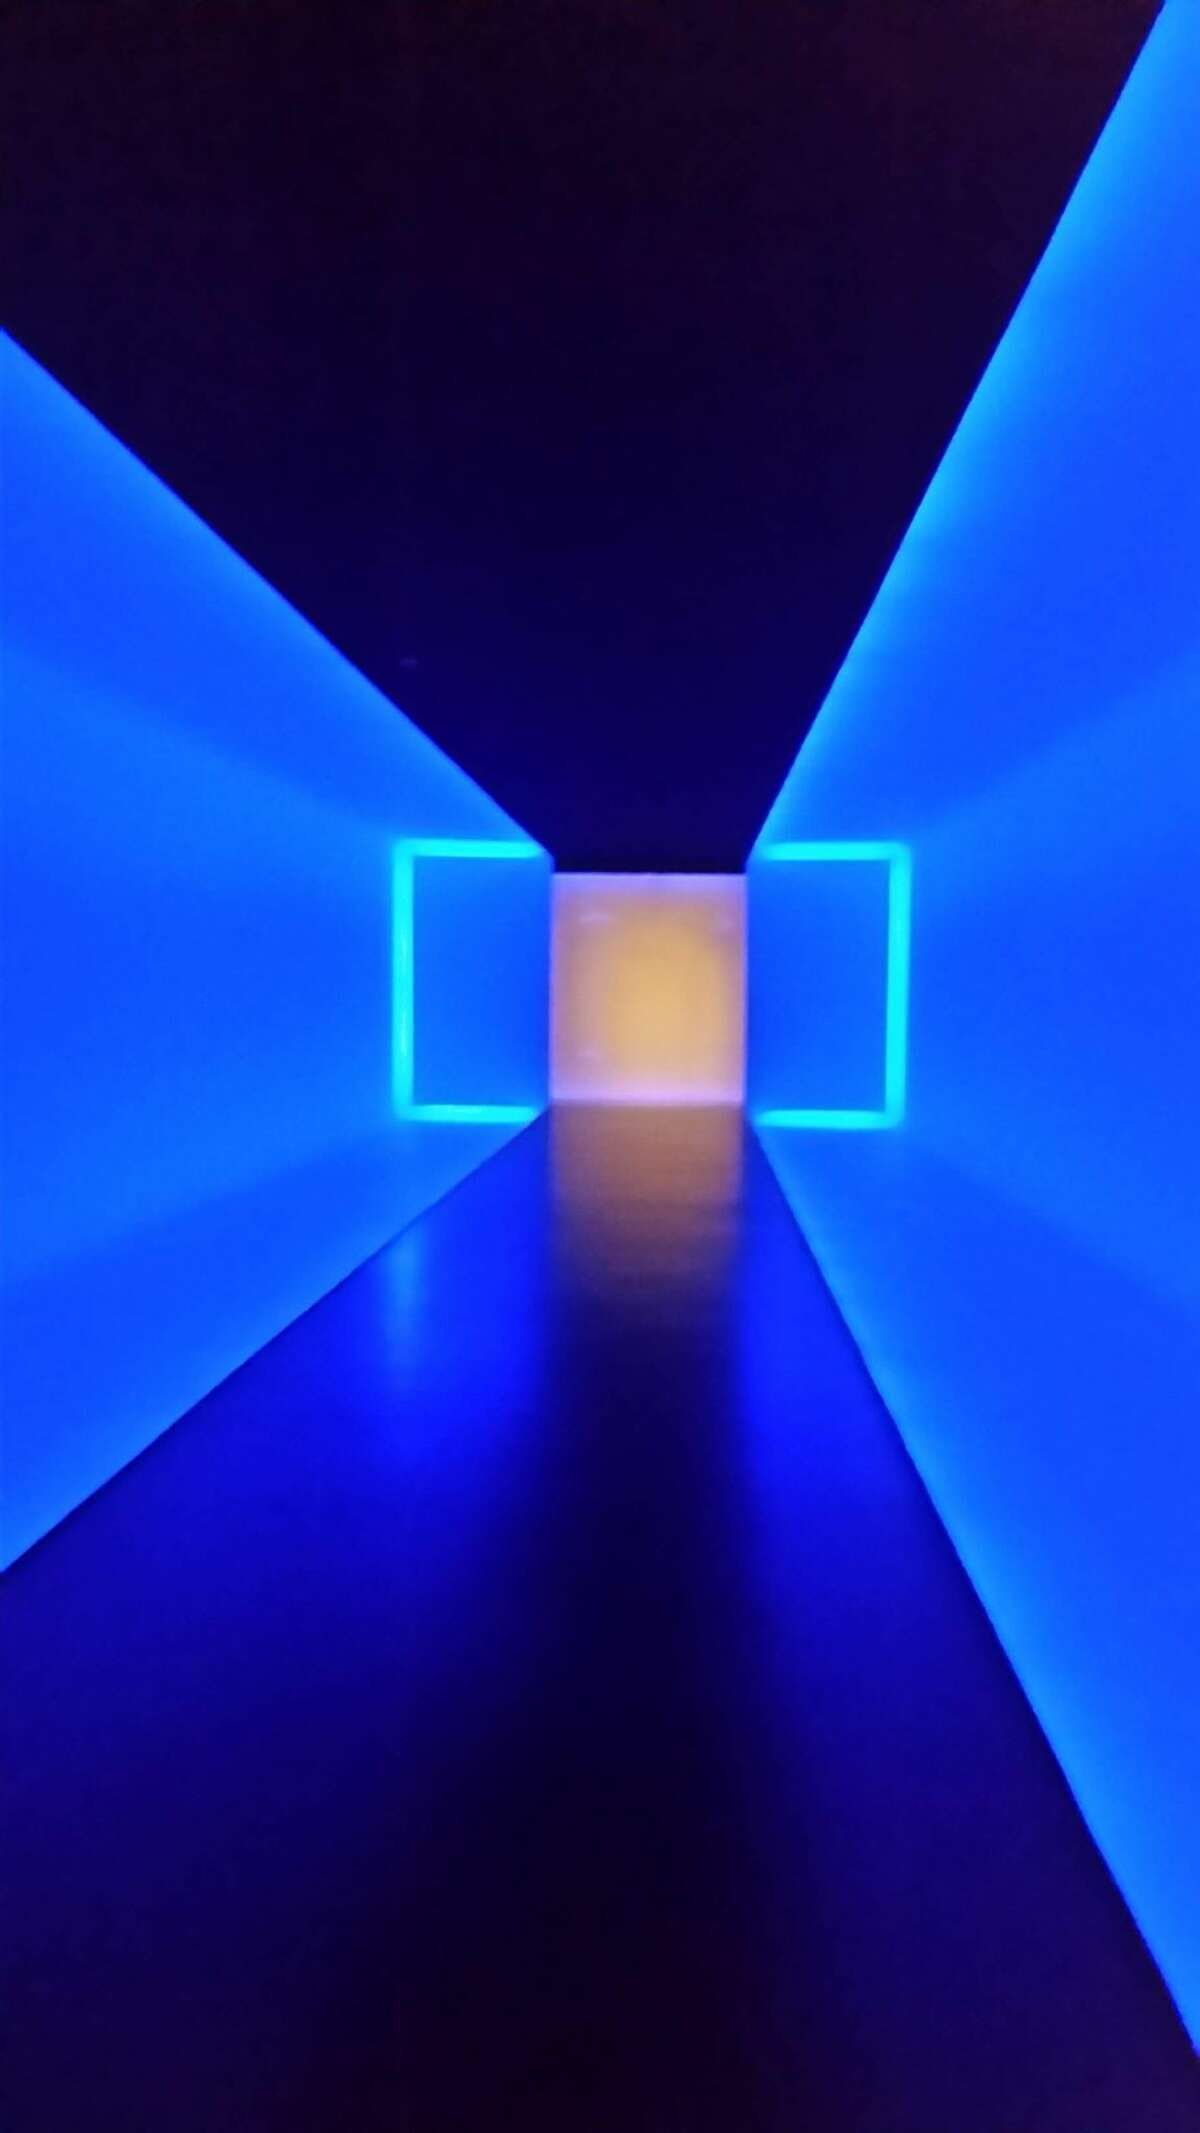 James Turrell's